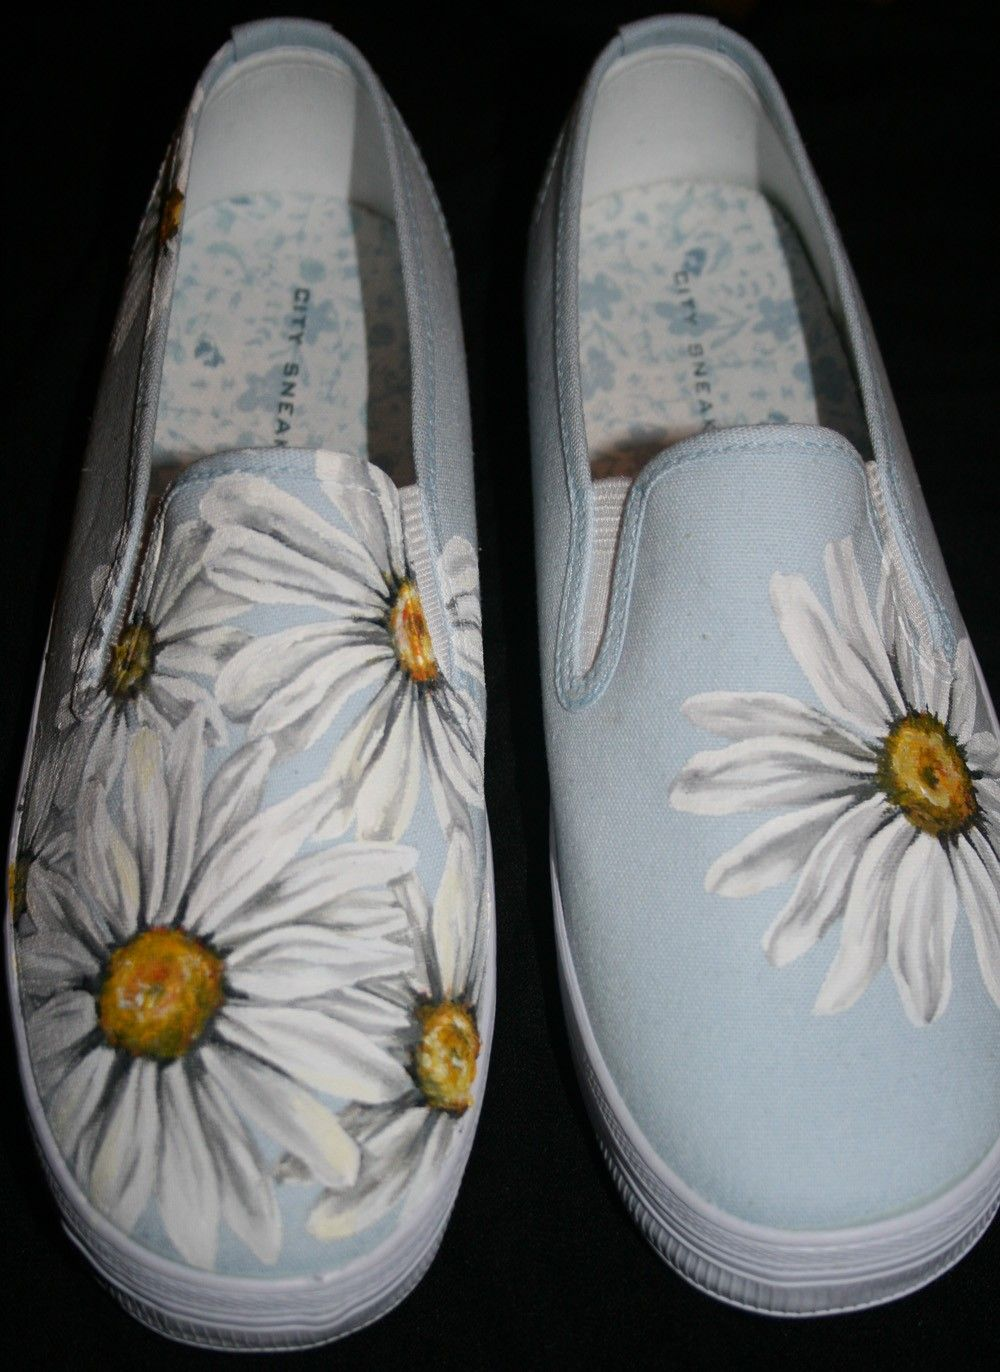 Hand Painted Daisy Shoes Painted shoes, Craft and Diy